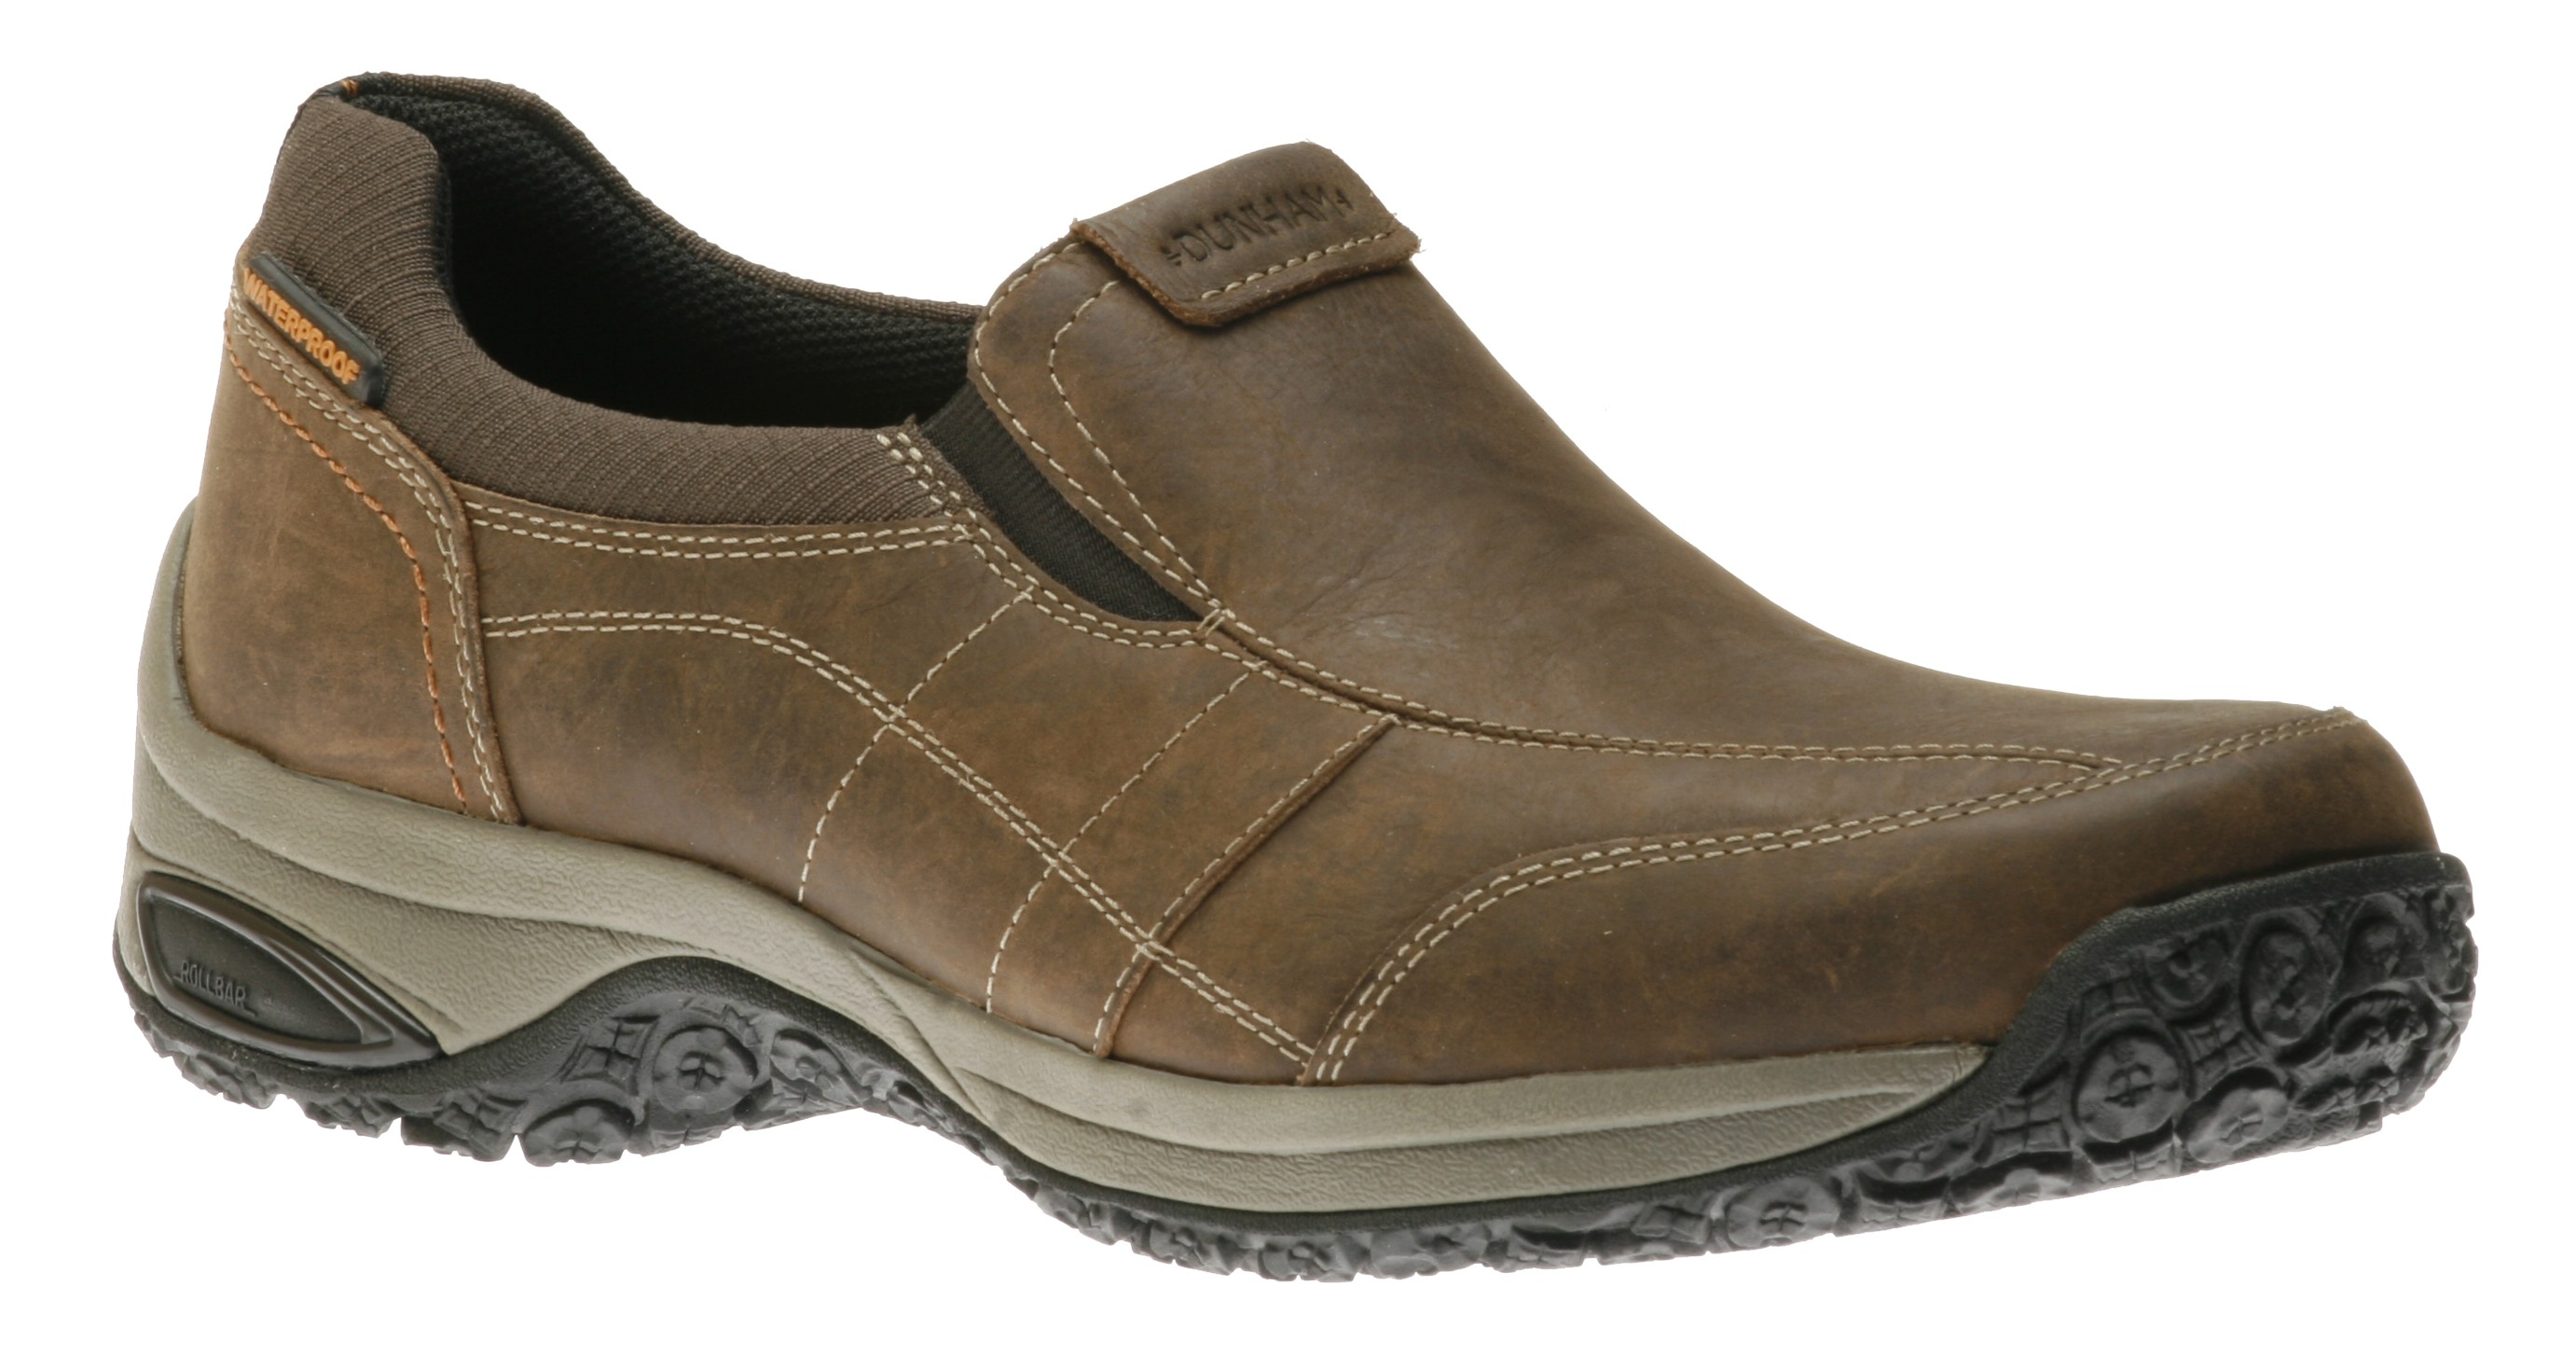 Choosing your best style dunham shoes